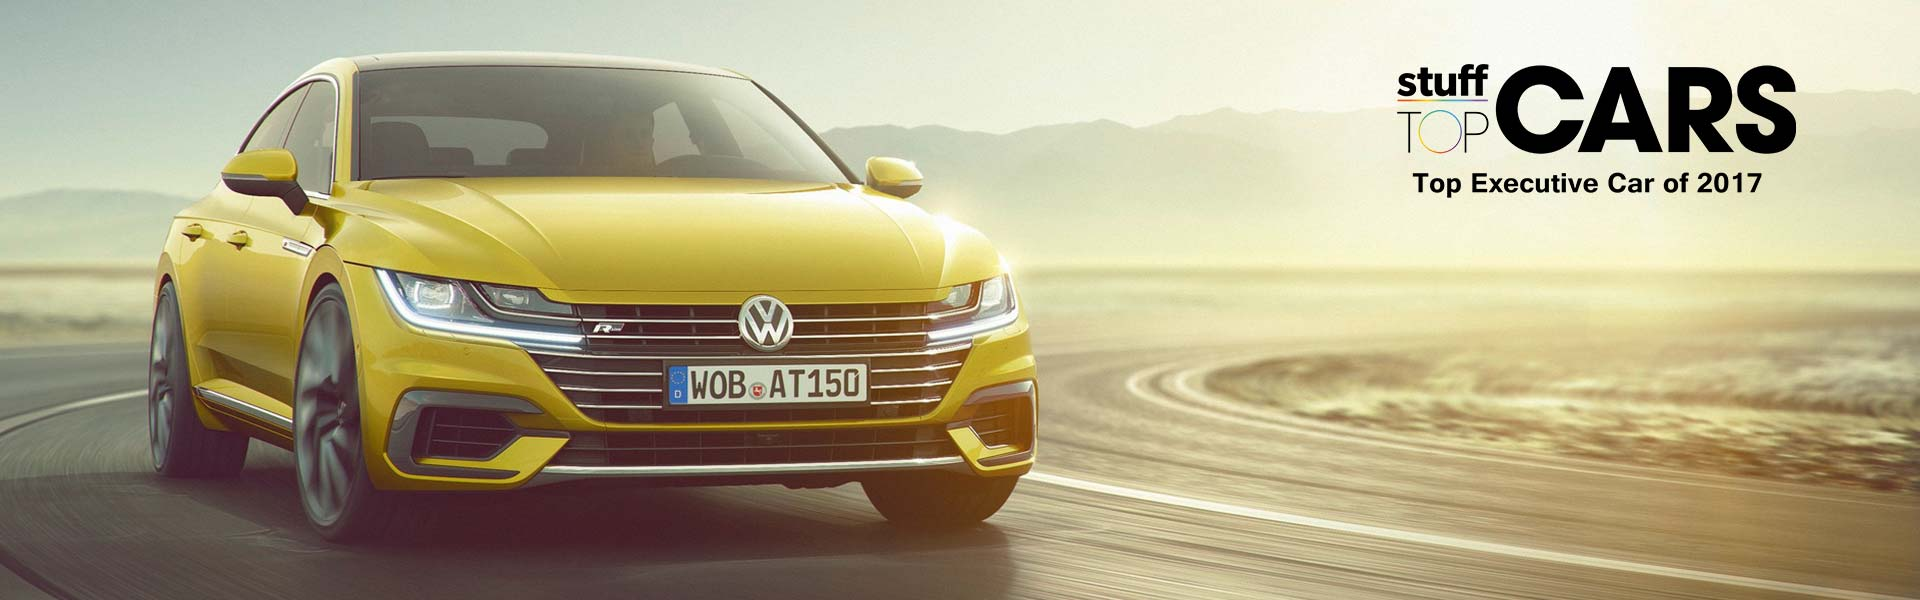 Volkswagen Arteon Best Executive Car Award